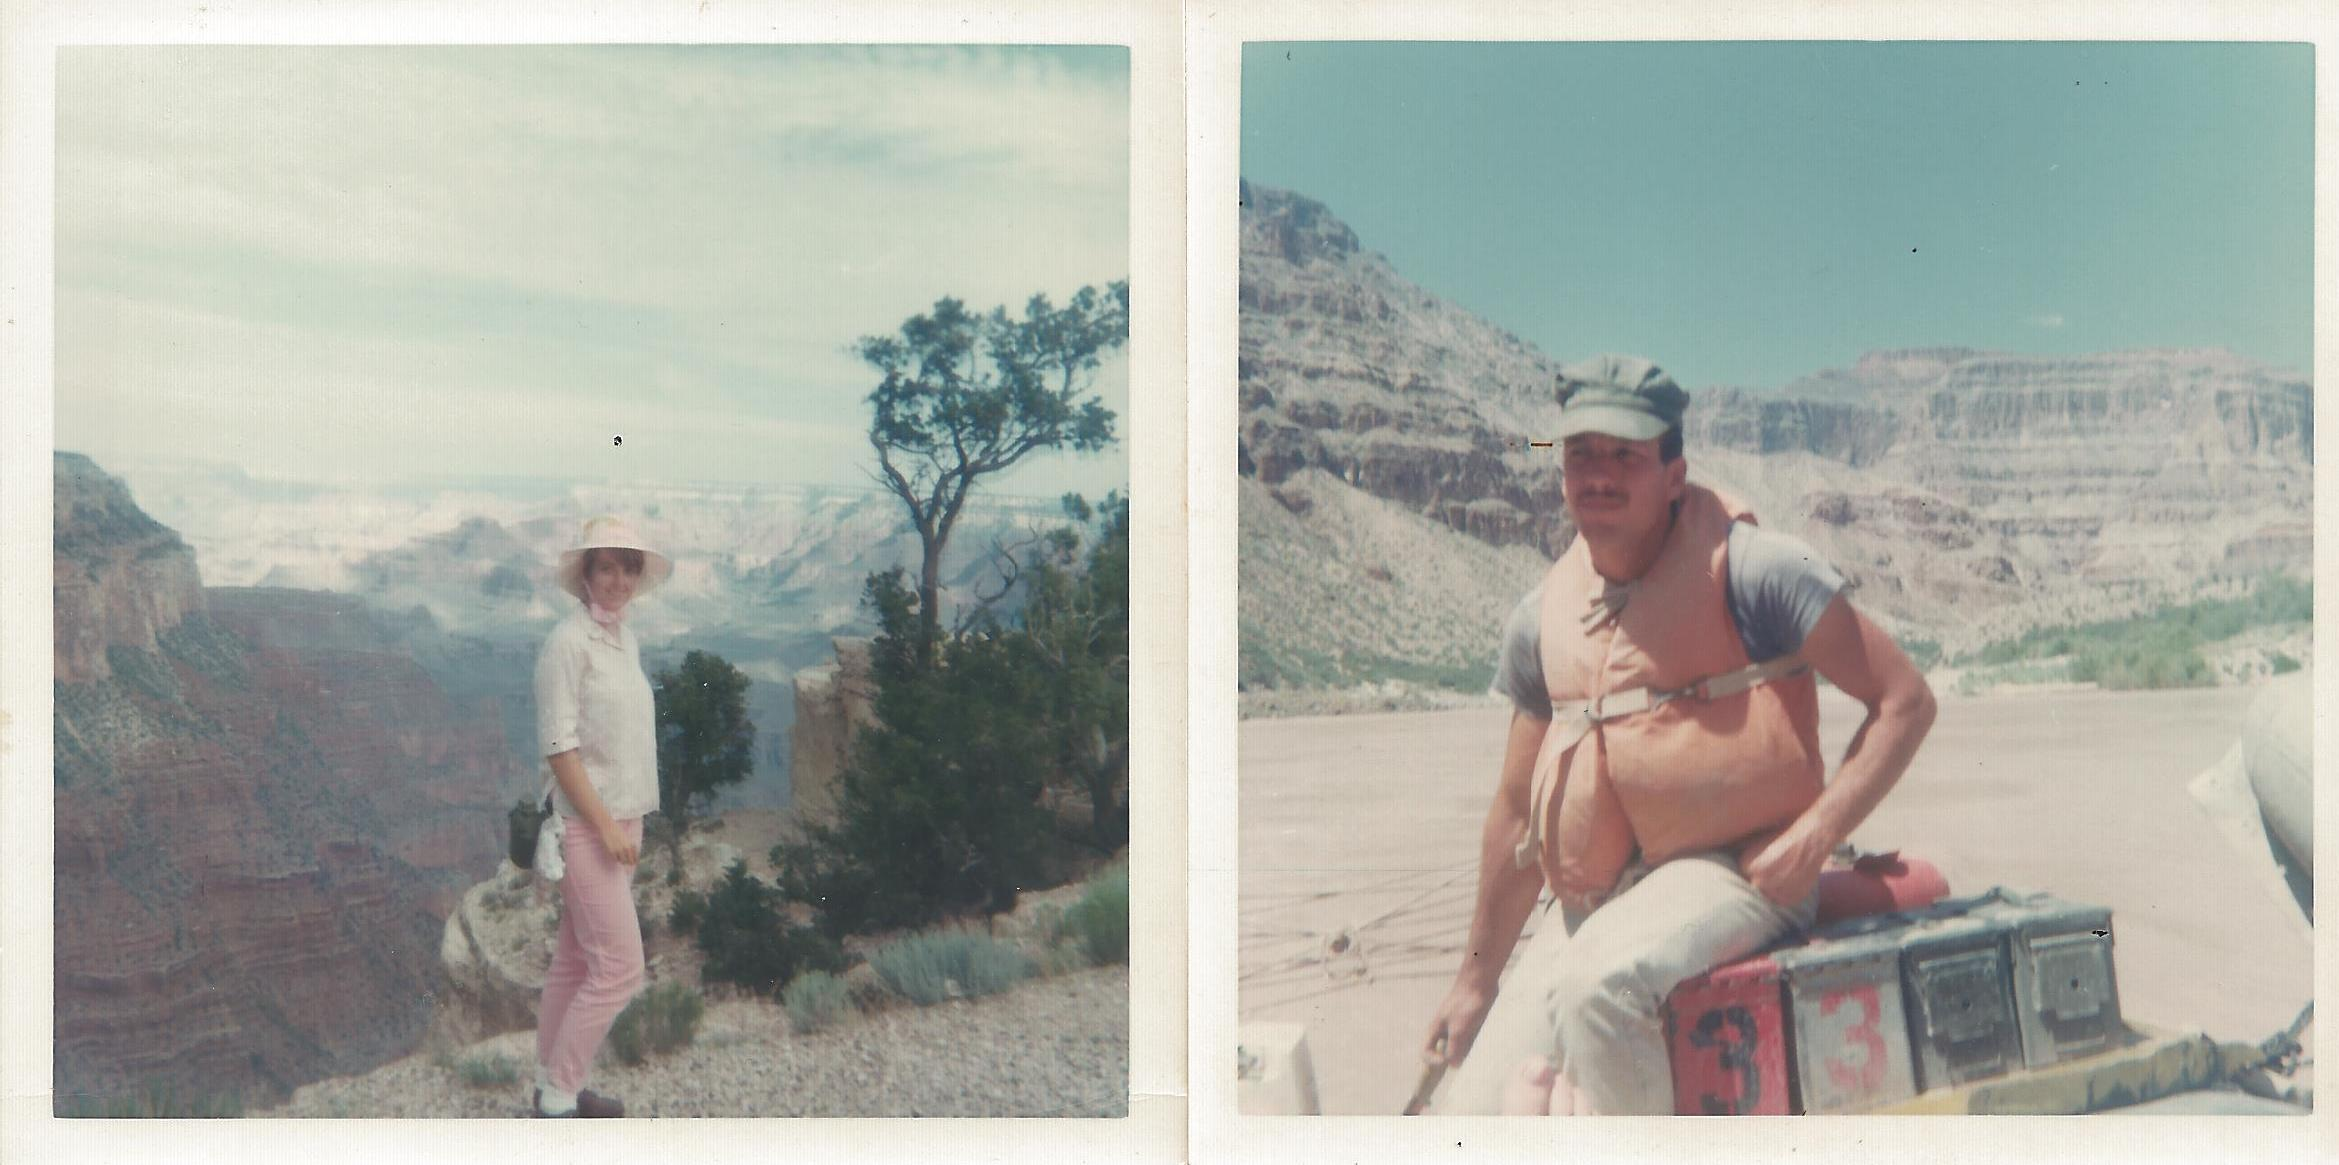 Vicki Woodruff hiking down the Kaibab Trail to join the river trip Aug. 10, 1968.  Dave Mackay running the boat in the Grand Canyon Aug. 13, 1968.